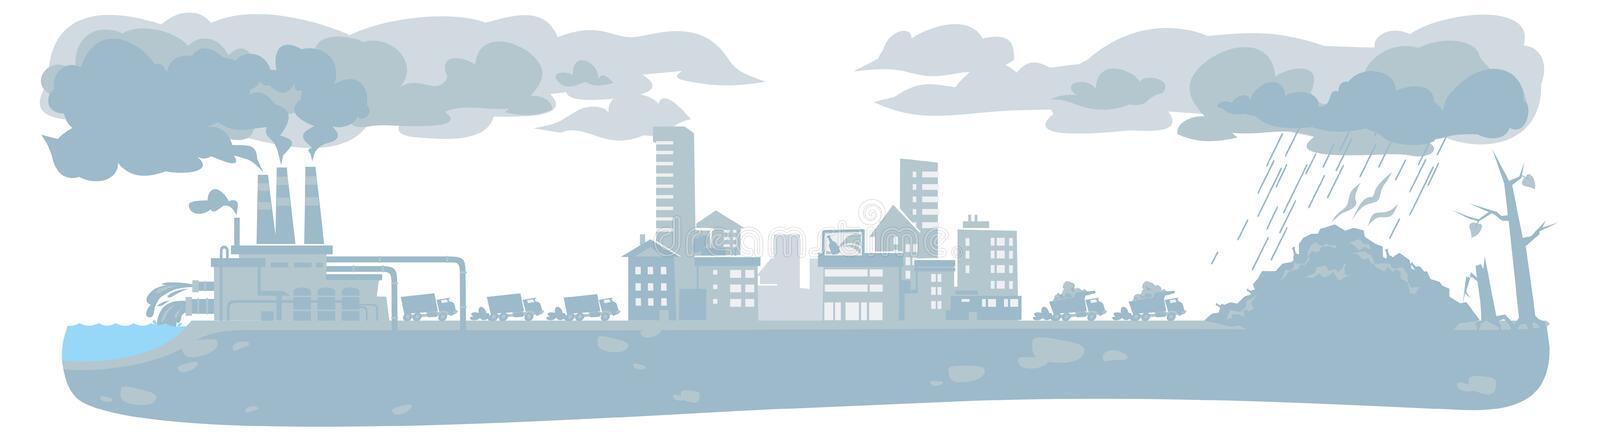 Urban ecology background with smoke clouds royalty free illustration